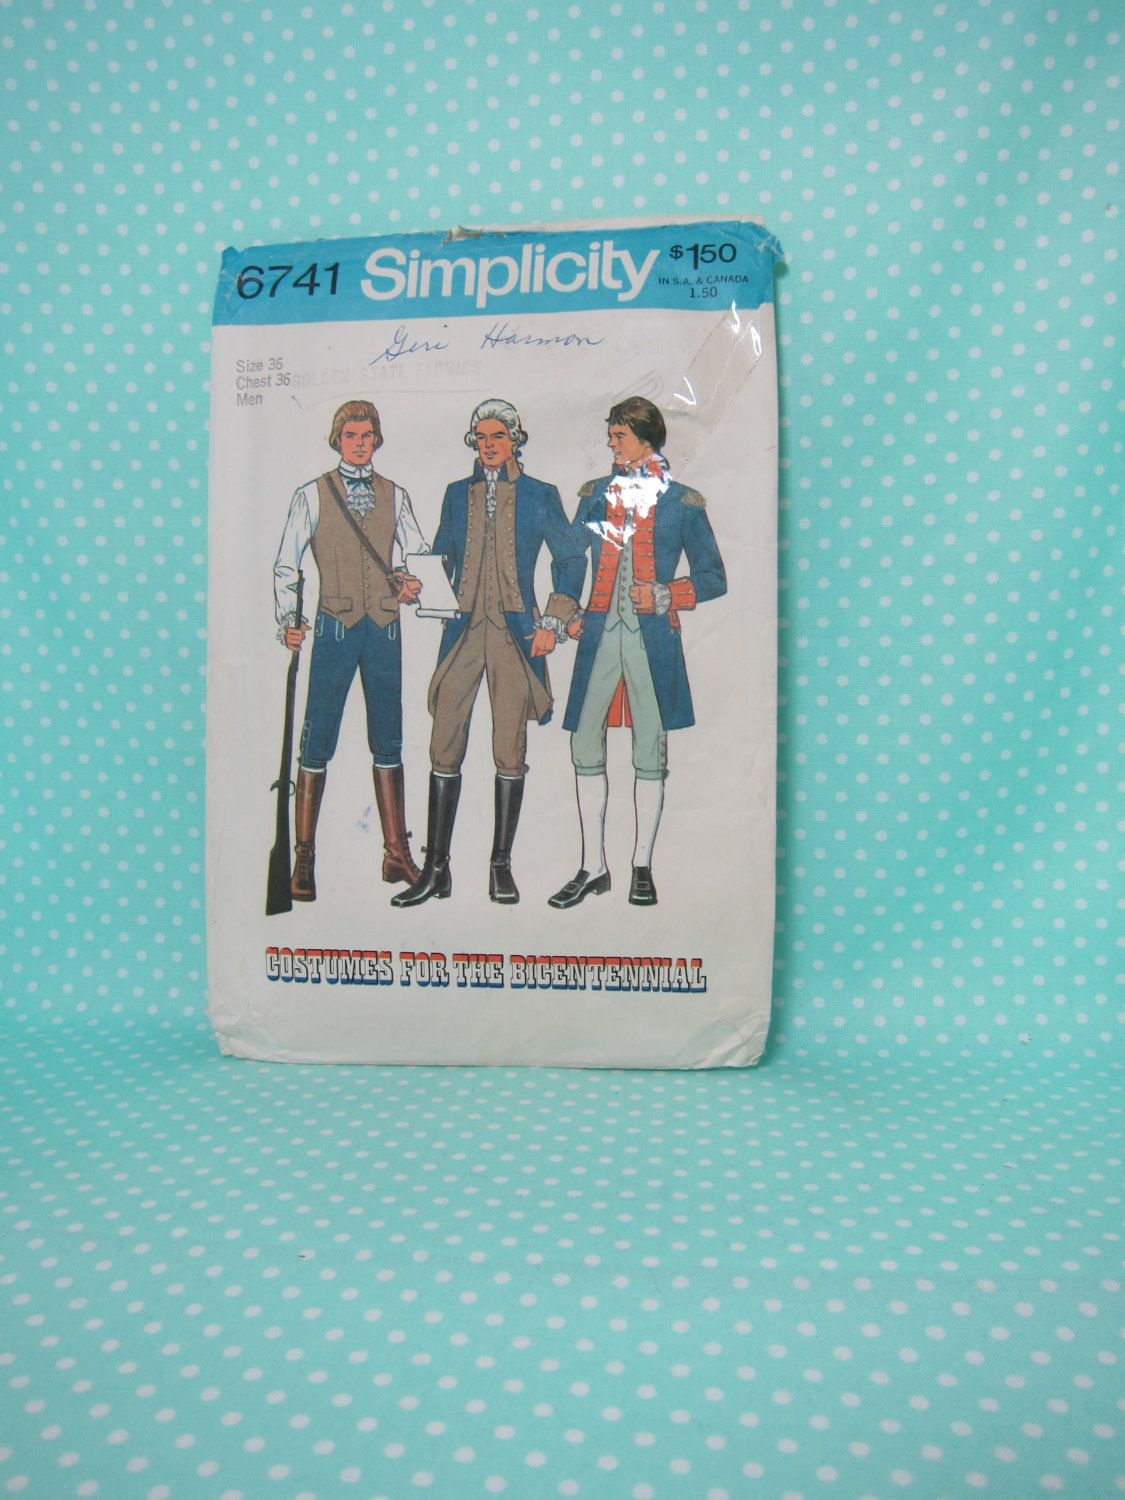 Alexander Hamilton Costume Pattern. Simplicity 6741. Men's Size: 36.   SOLD  Revolutionary War Costume Pattern. George Washiongton, Layfayette by FashionSew on Etsy